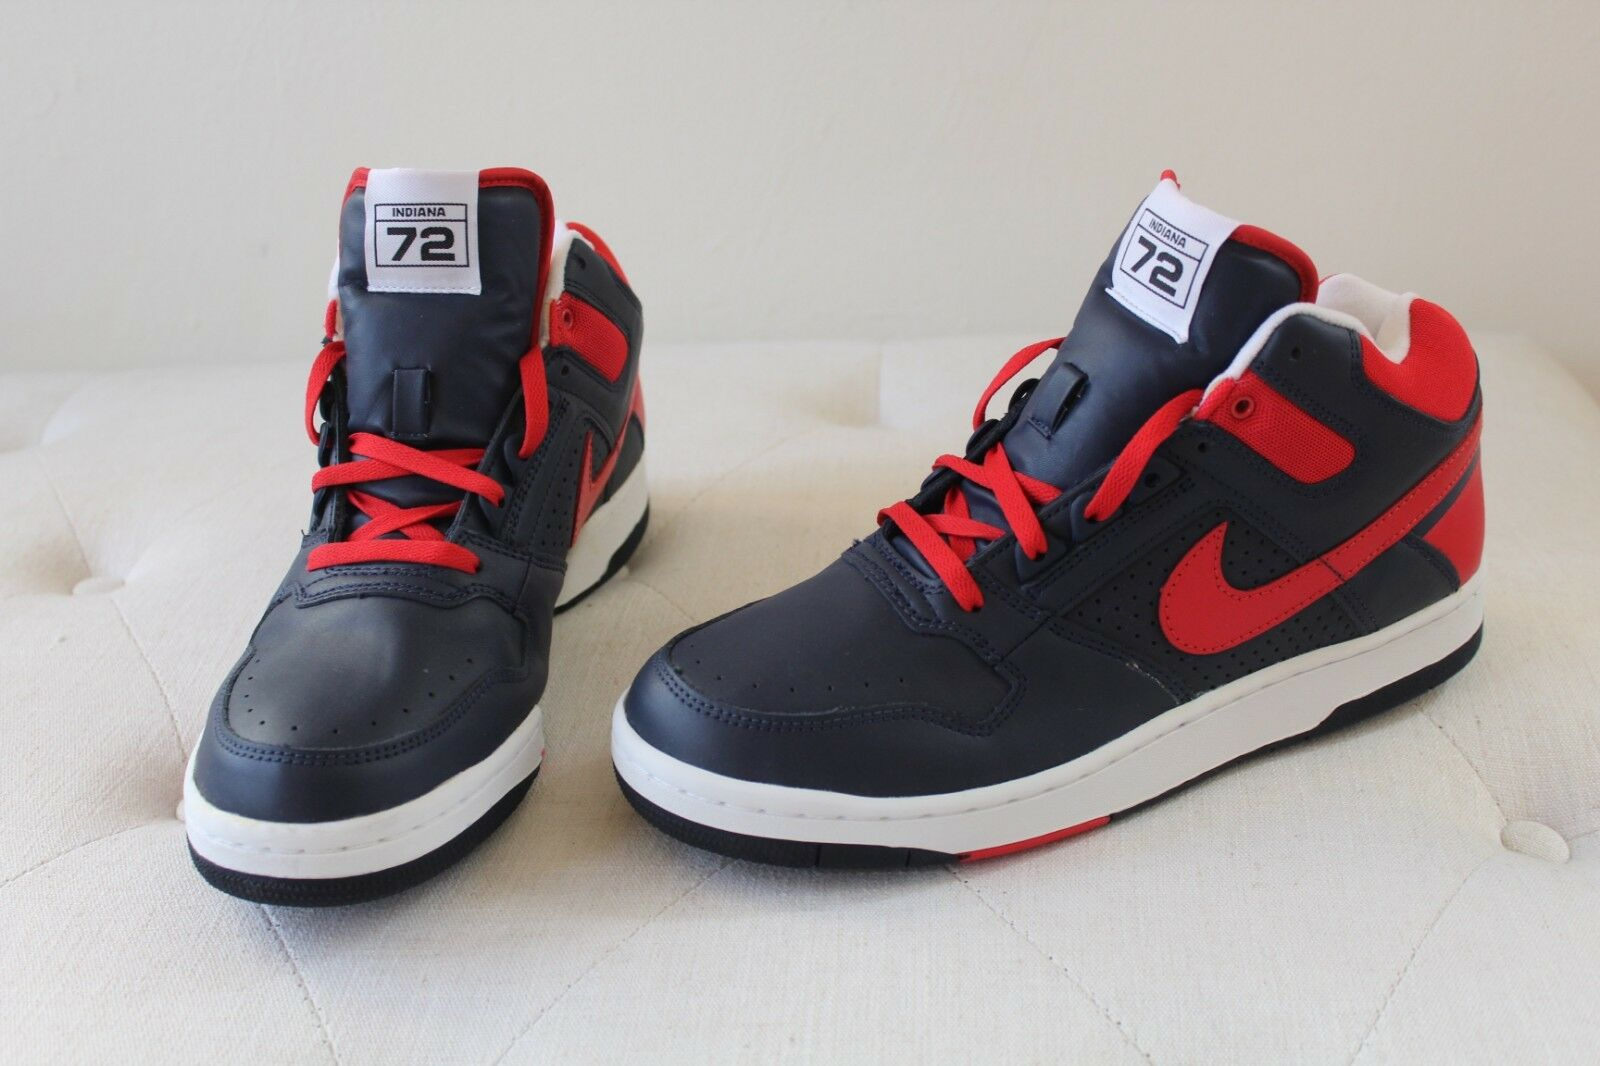 Nike Delta Force 3 4 Indiana 72 College Navy Sport rosso-bianca  307723 461 S. 11.5